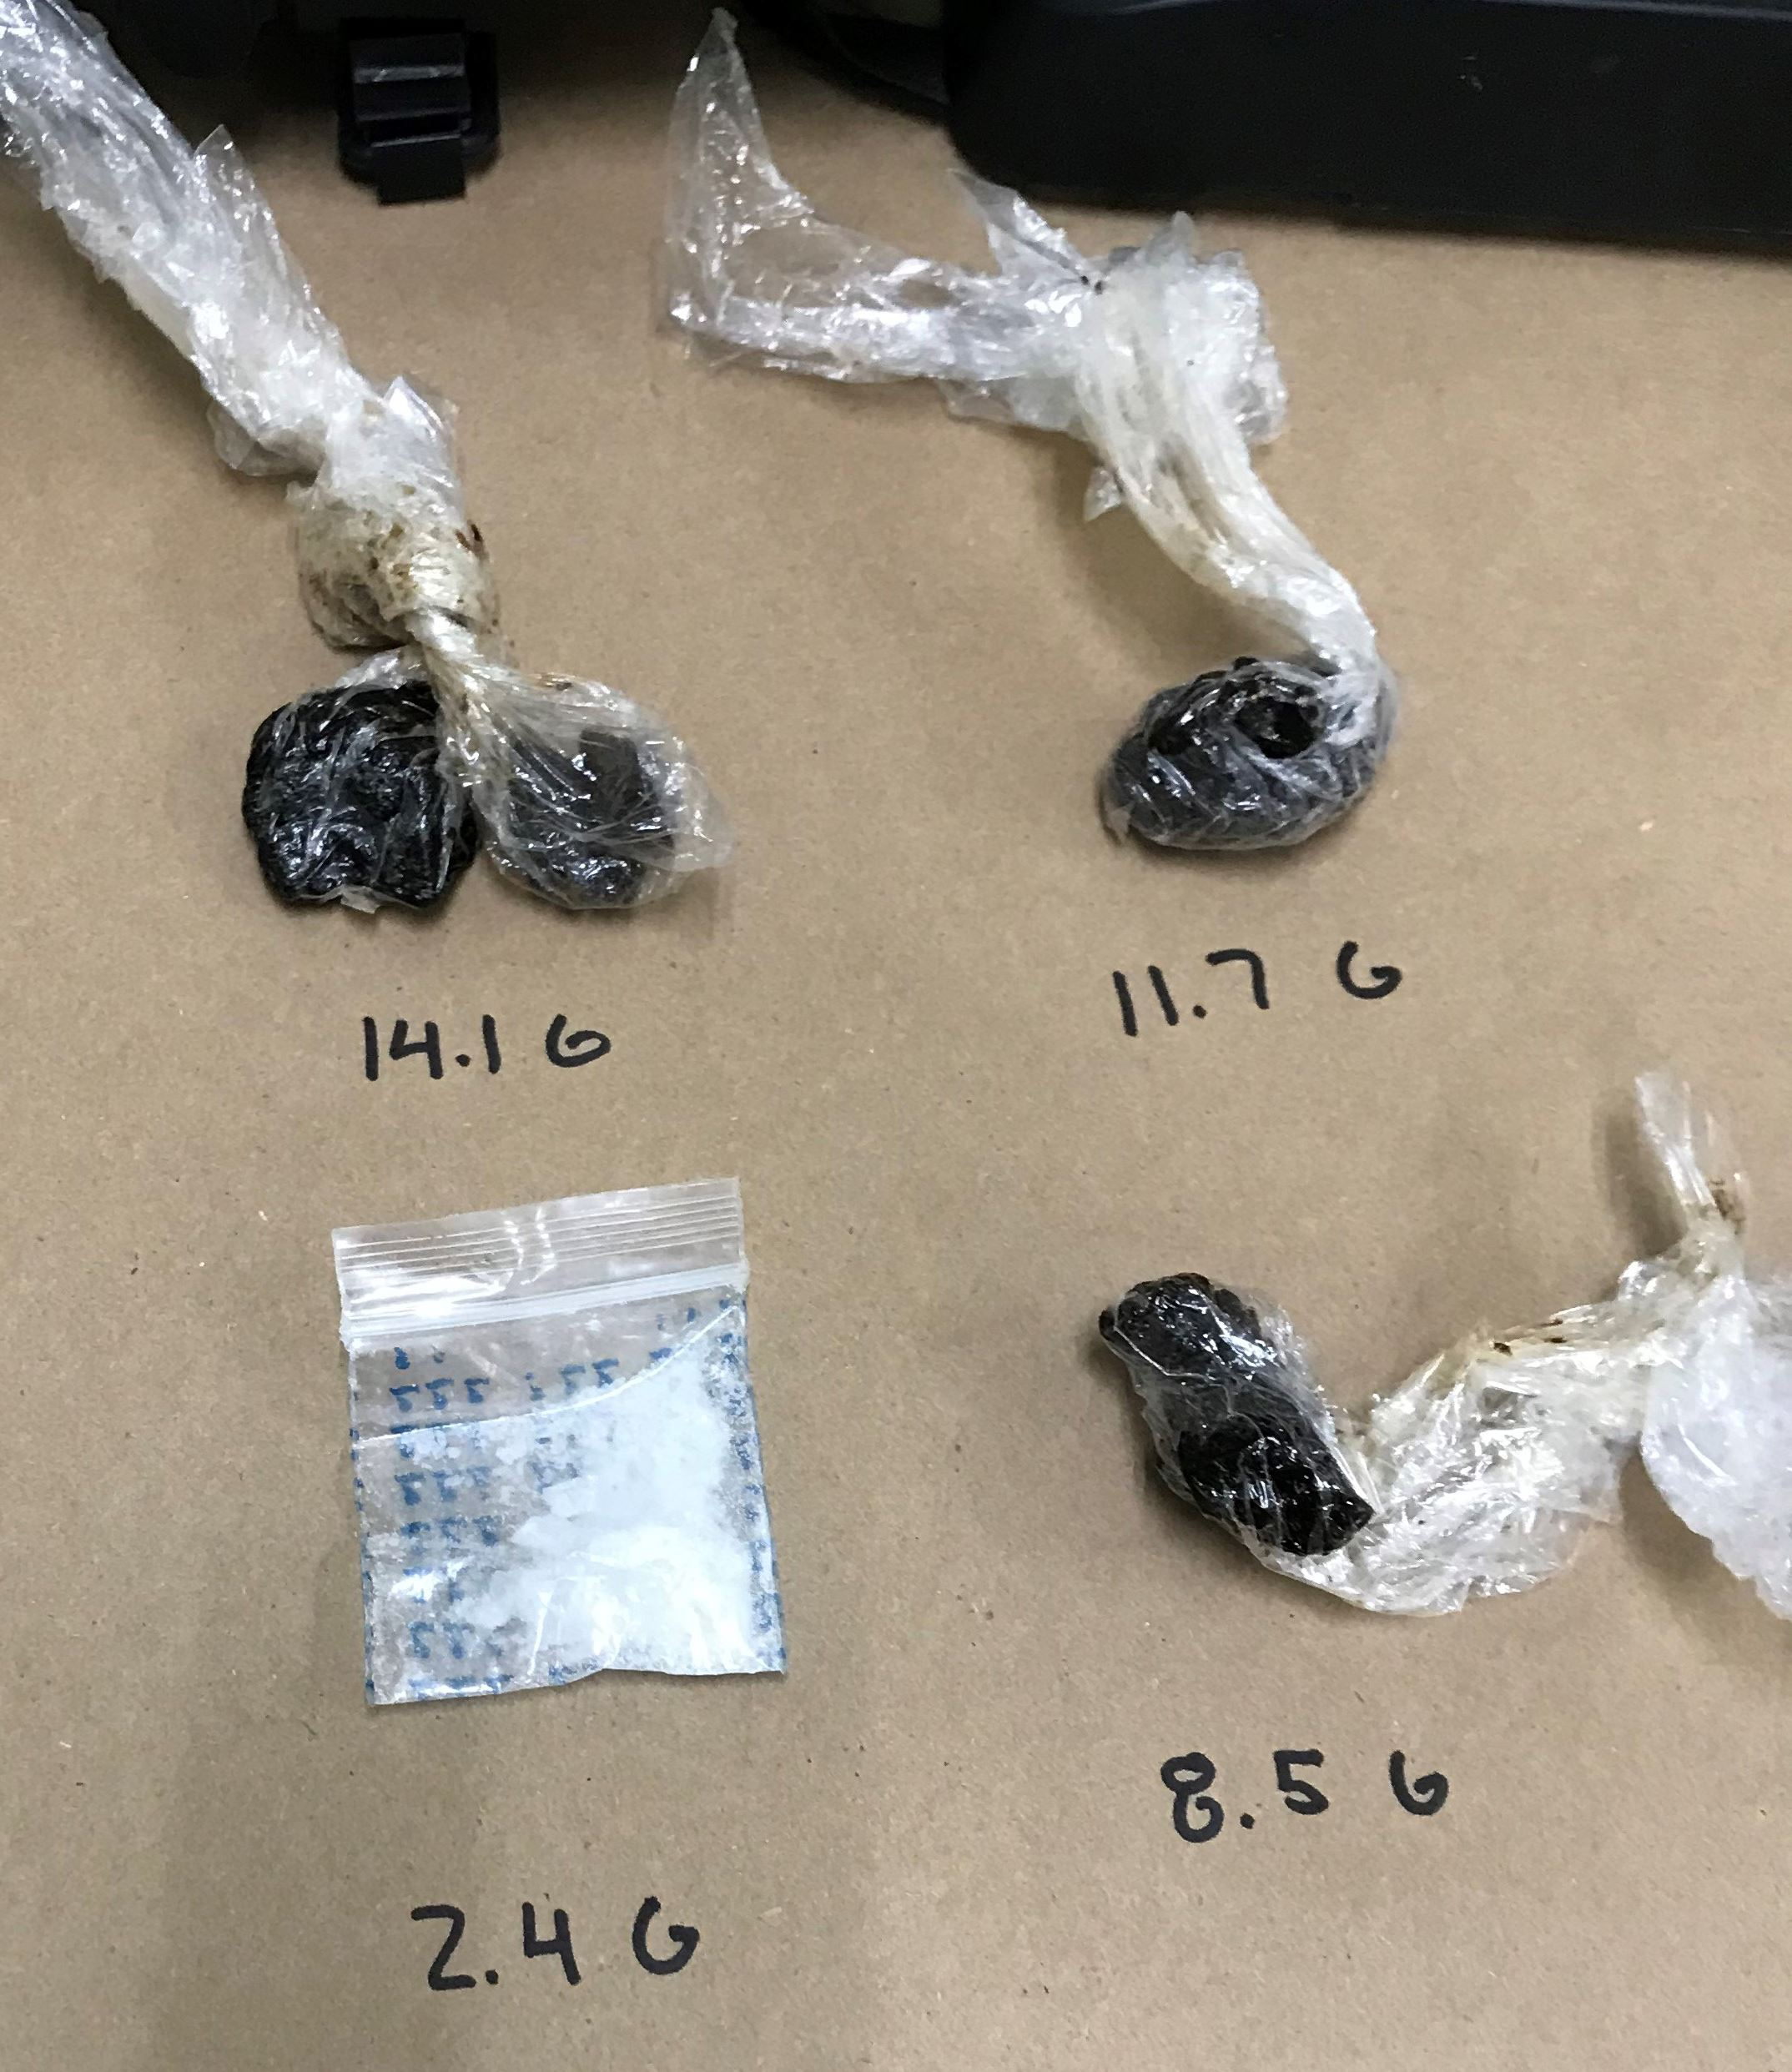 Heroin and Methamphetamine on a table